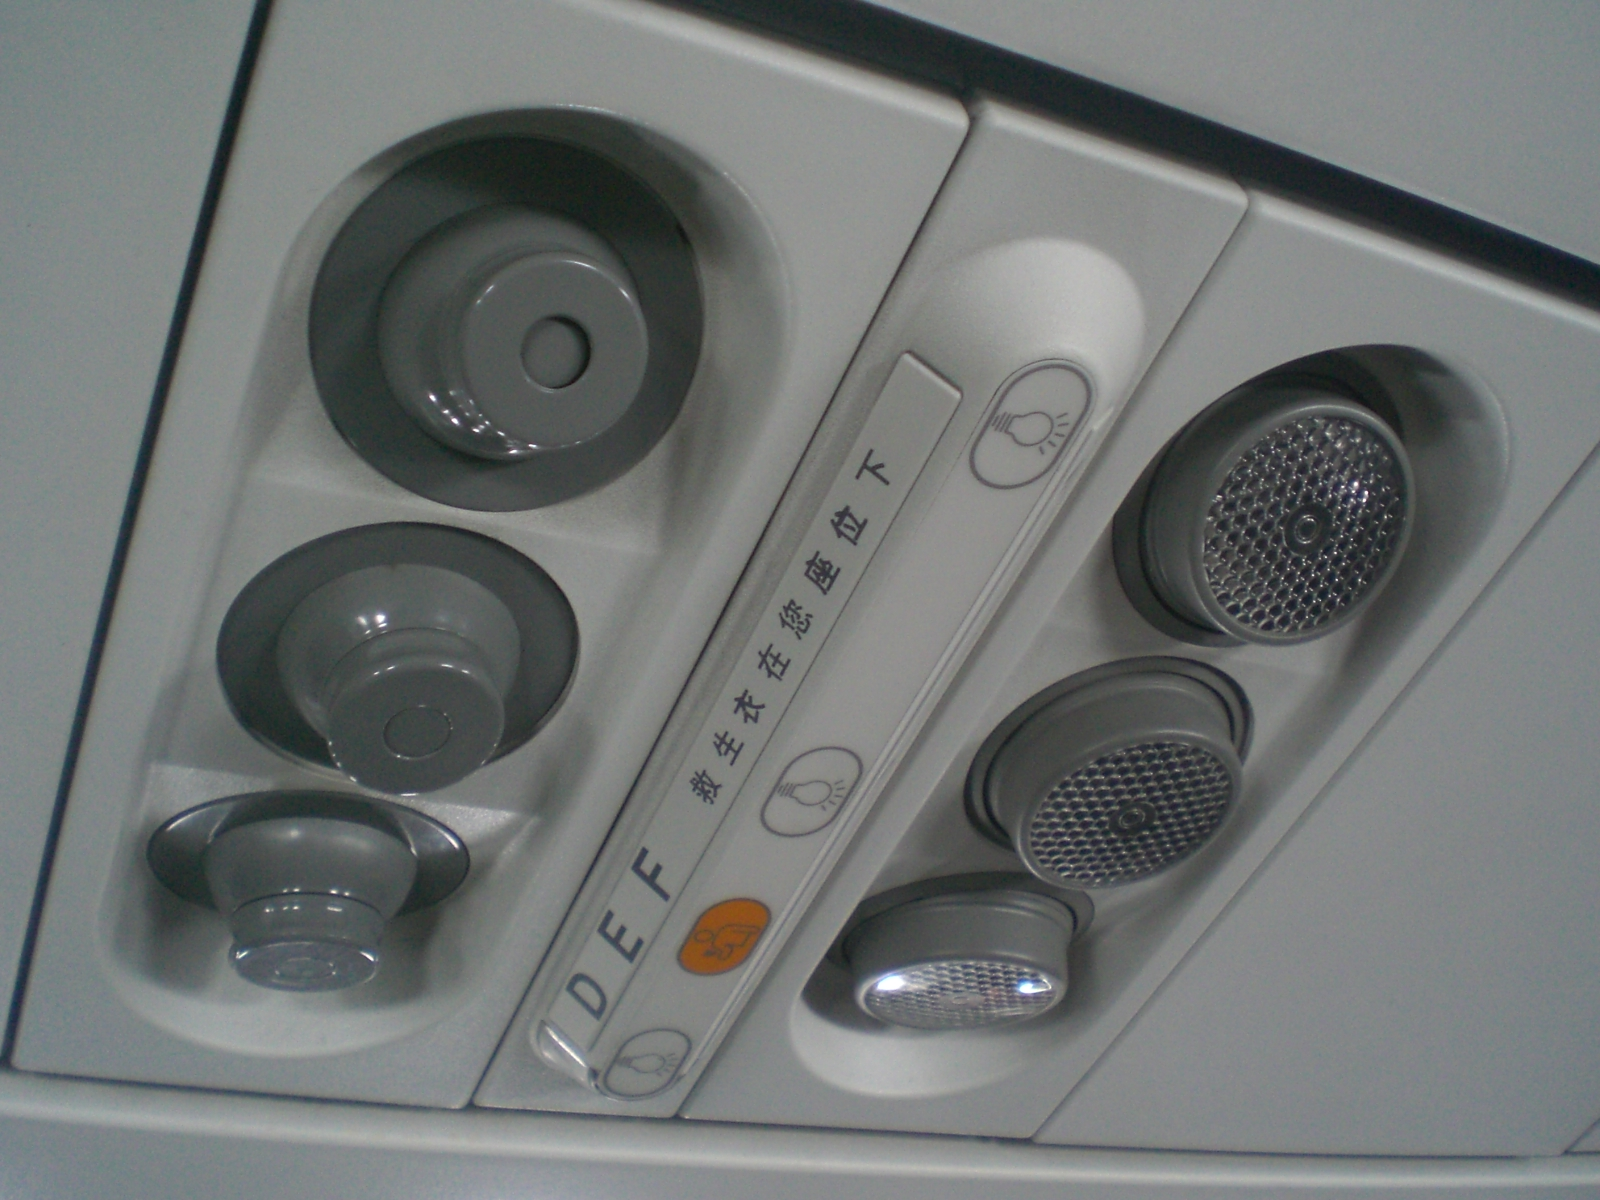 file xian china eastern airlines aircraft cabins lighting n air